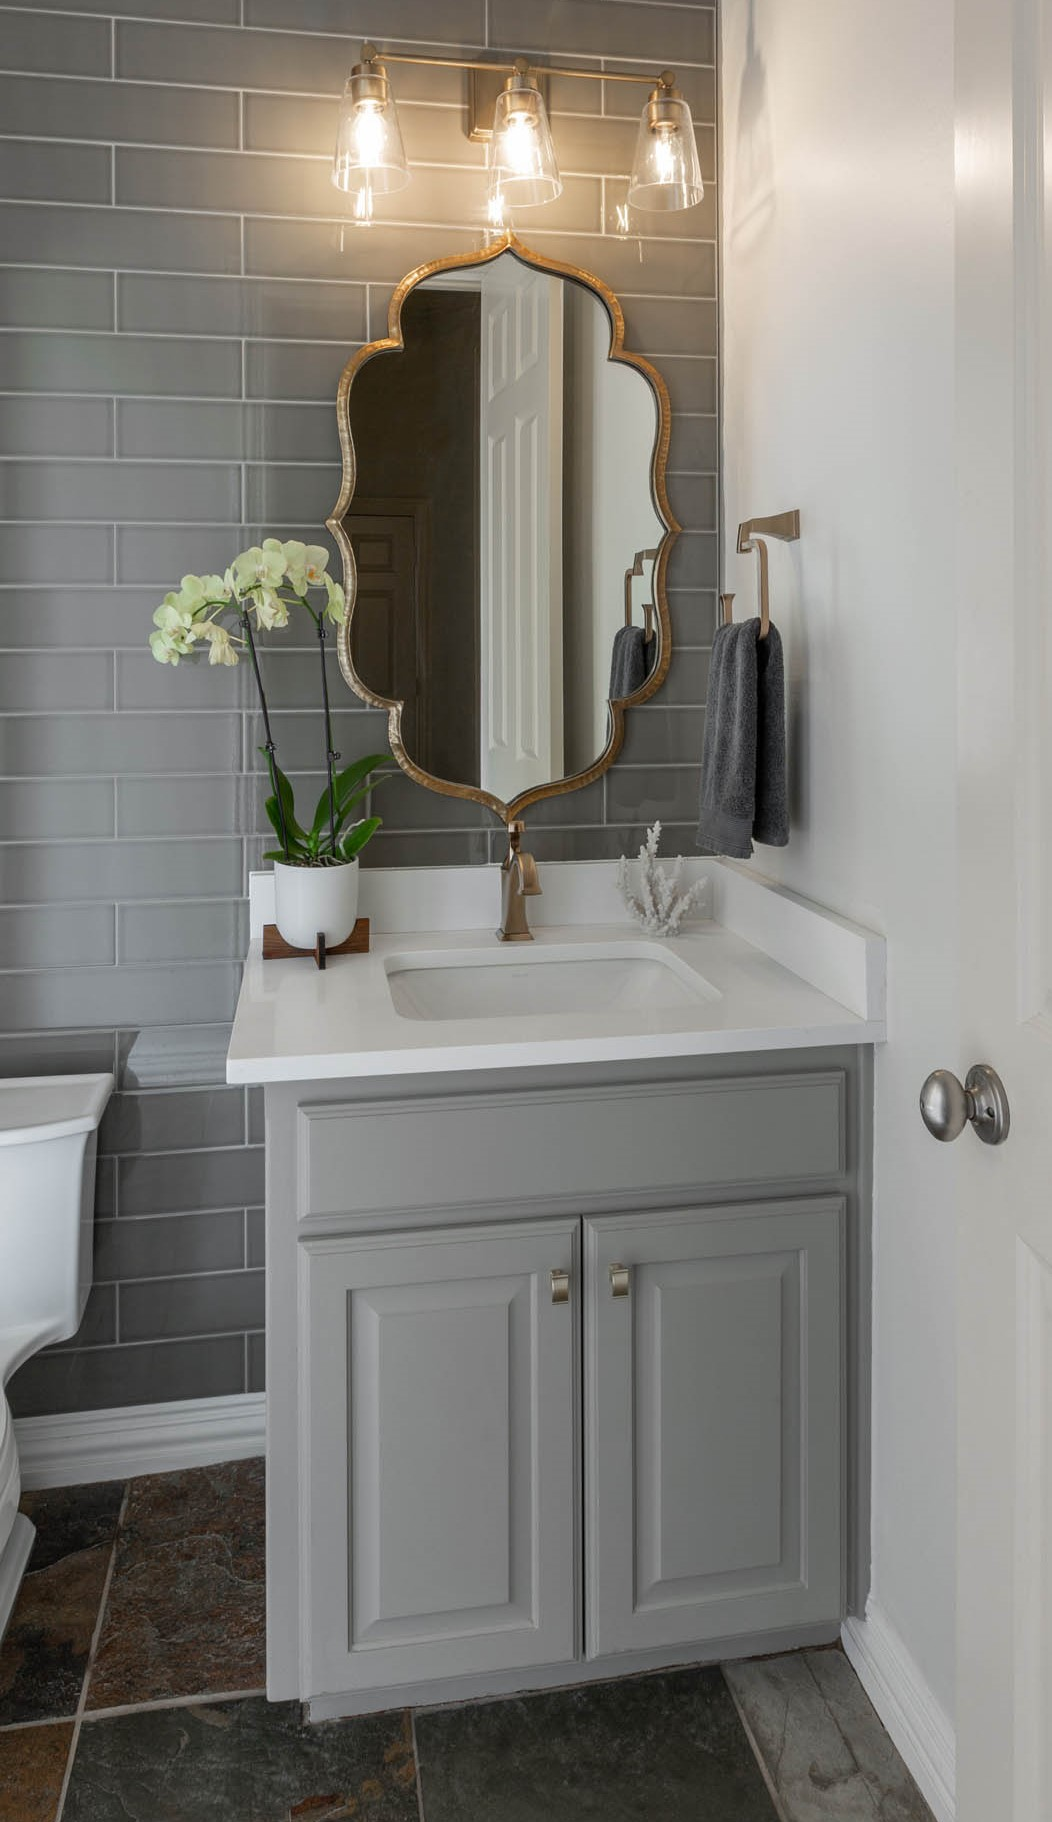 Custom mirror and new lights in bathroom remodel facelift